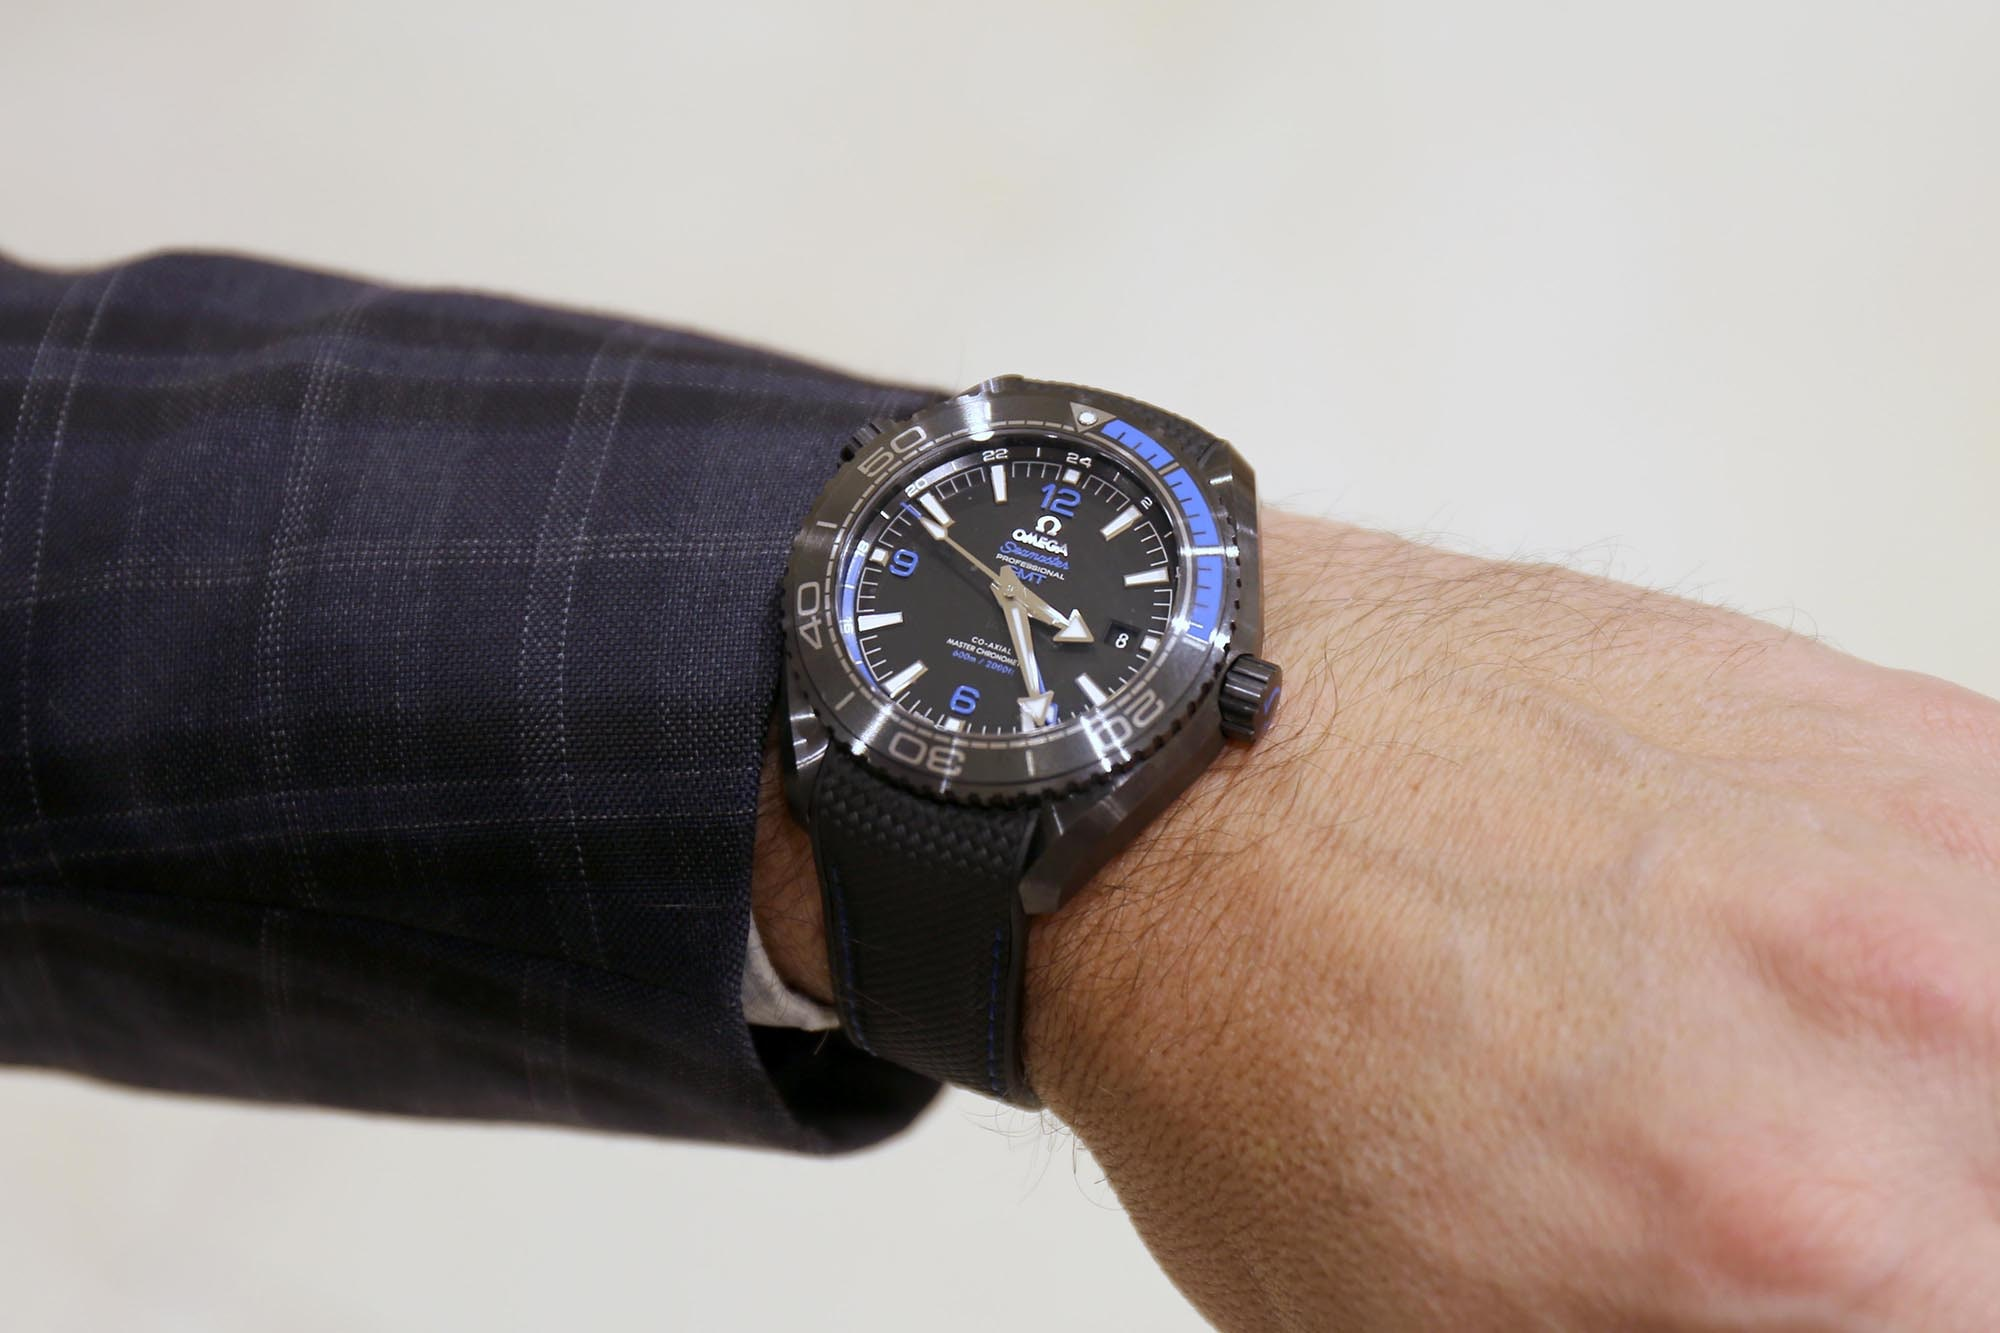 Omega Seamaster Planet Ocean GMT Deep Black Interview: Omega CEO Raynald Aeschlimann Gives Us A Look At The Future Of The Brand (And His Taste In George Clooney Movies) Interview: Omega CEO Raynald Aeschlimann Gives Us A Look At The Future Of The Brand (And His Taste In George Clooney Movies) rrrr